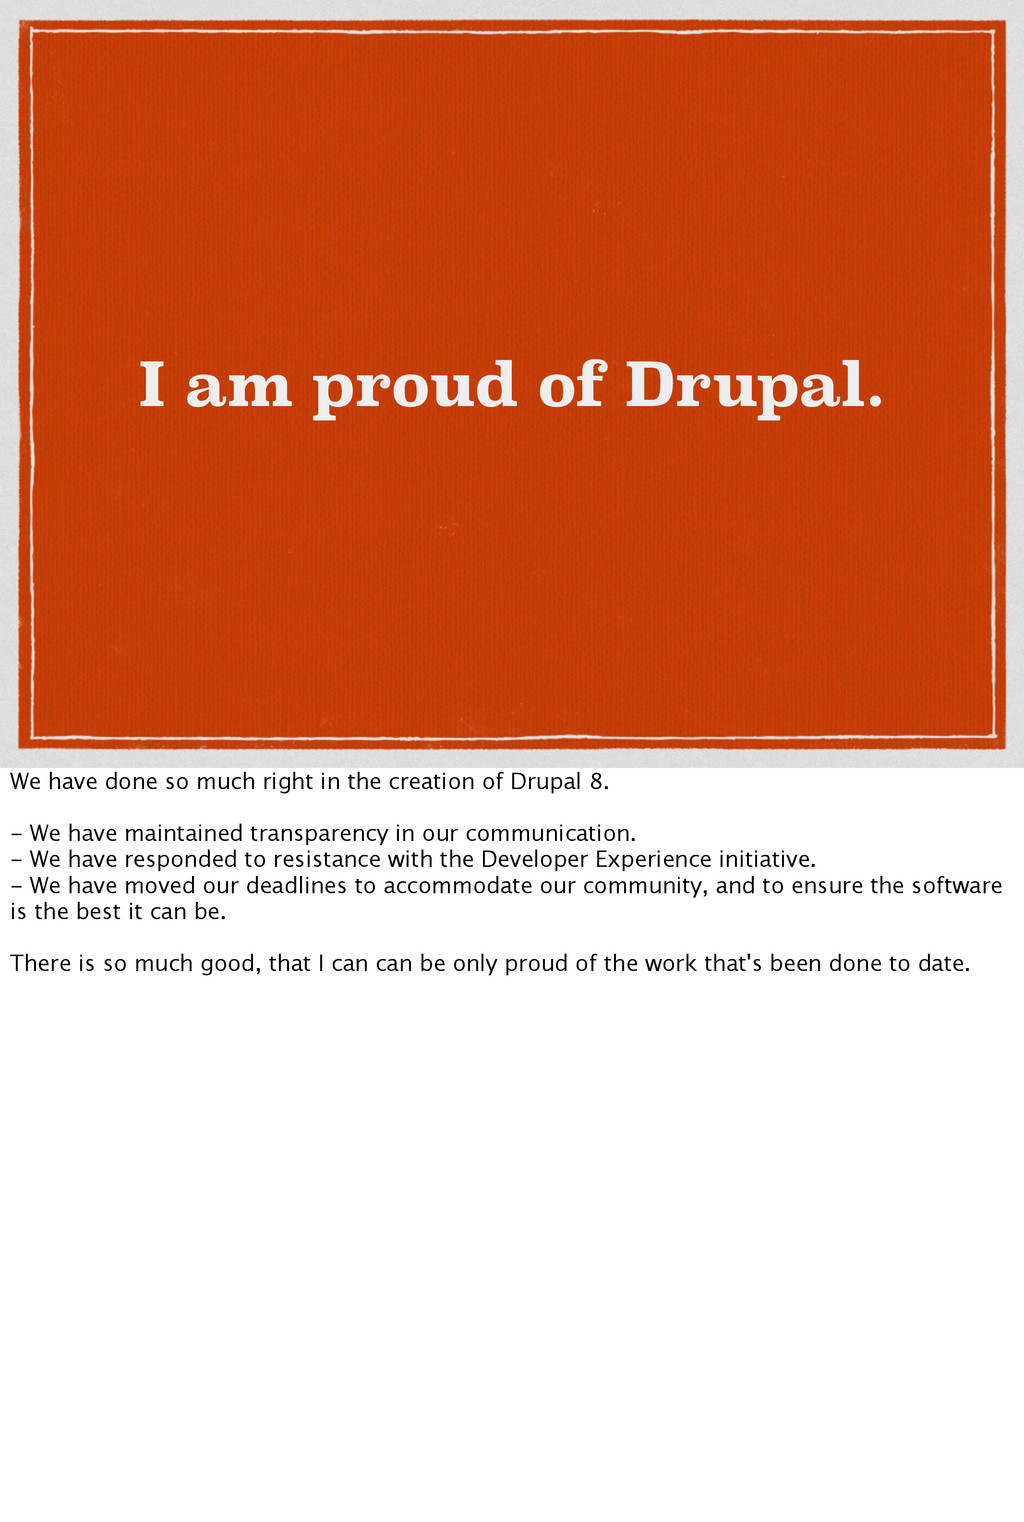 I am proud of Drupal. We have done so much righ...